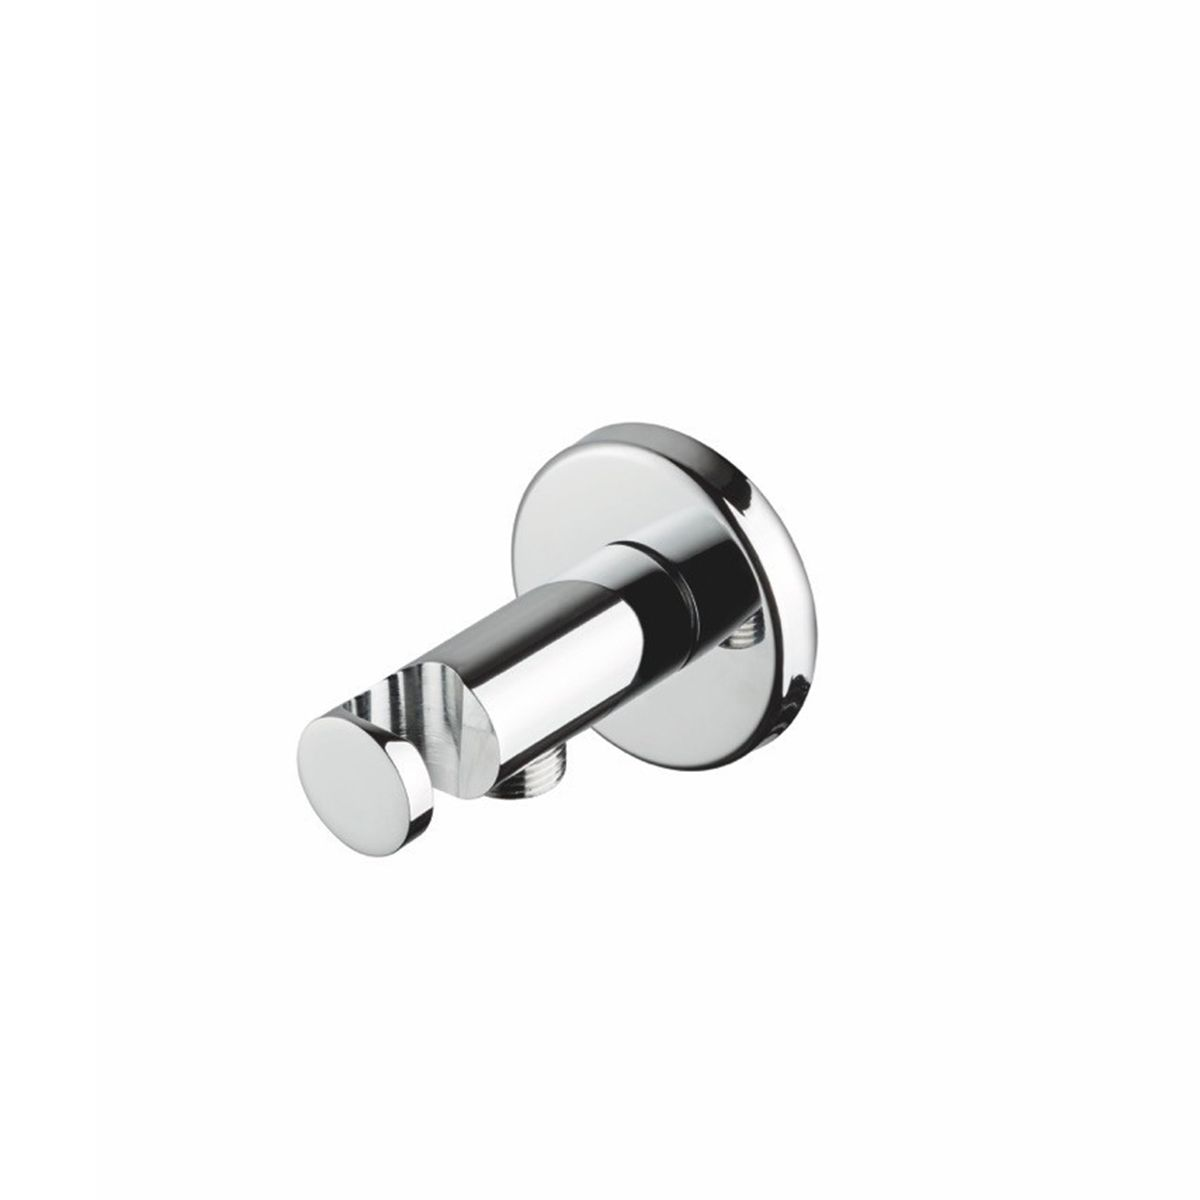 Bathrooms To Love Vema Chrome Handset Wall Bracket and Outlet